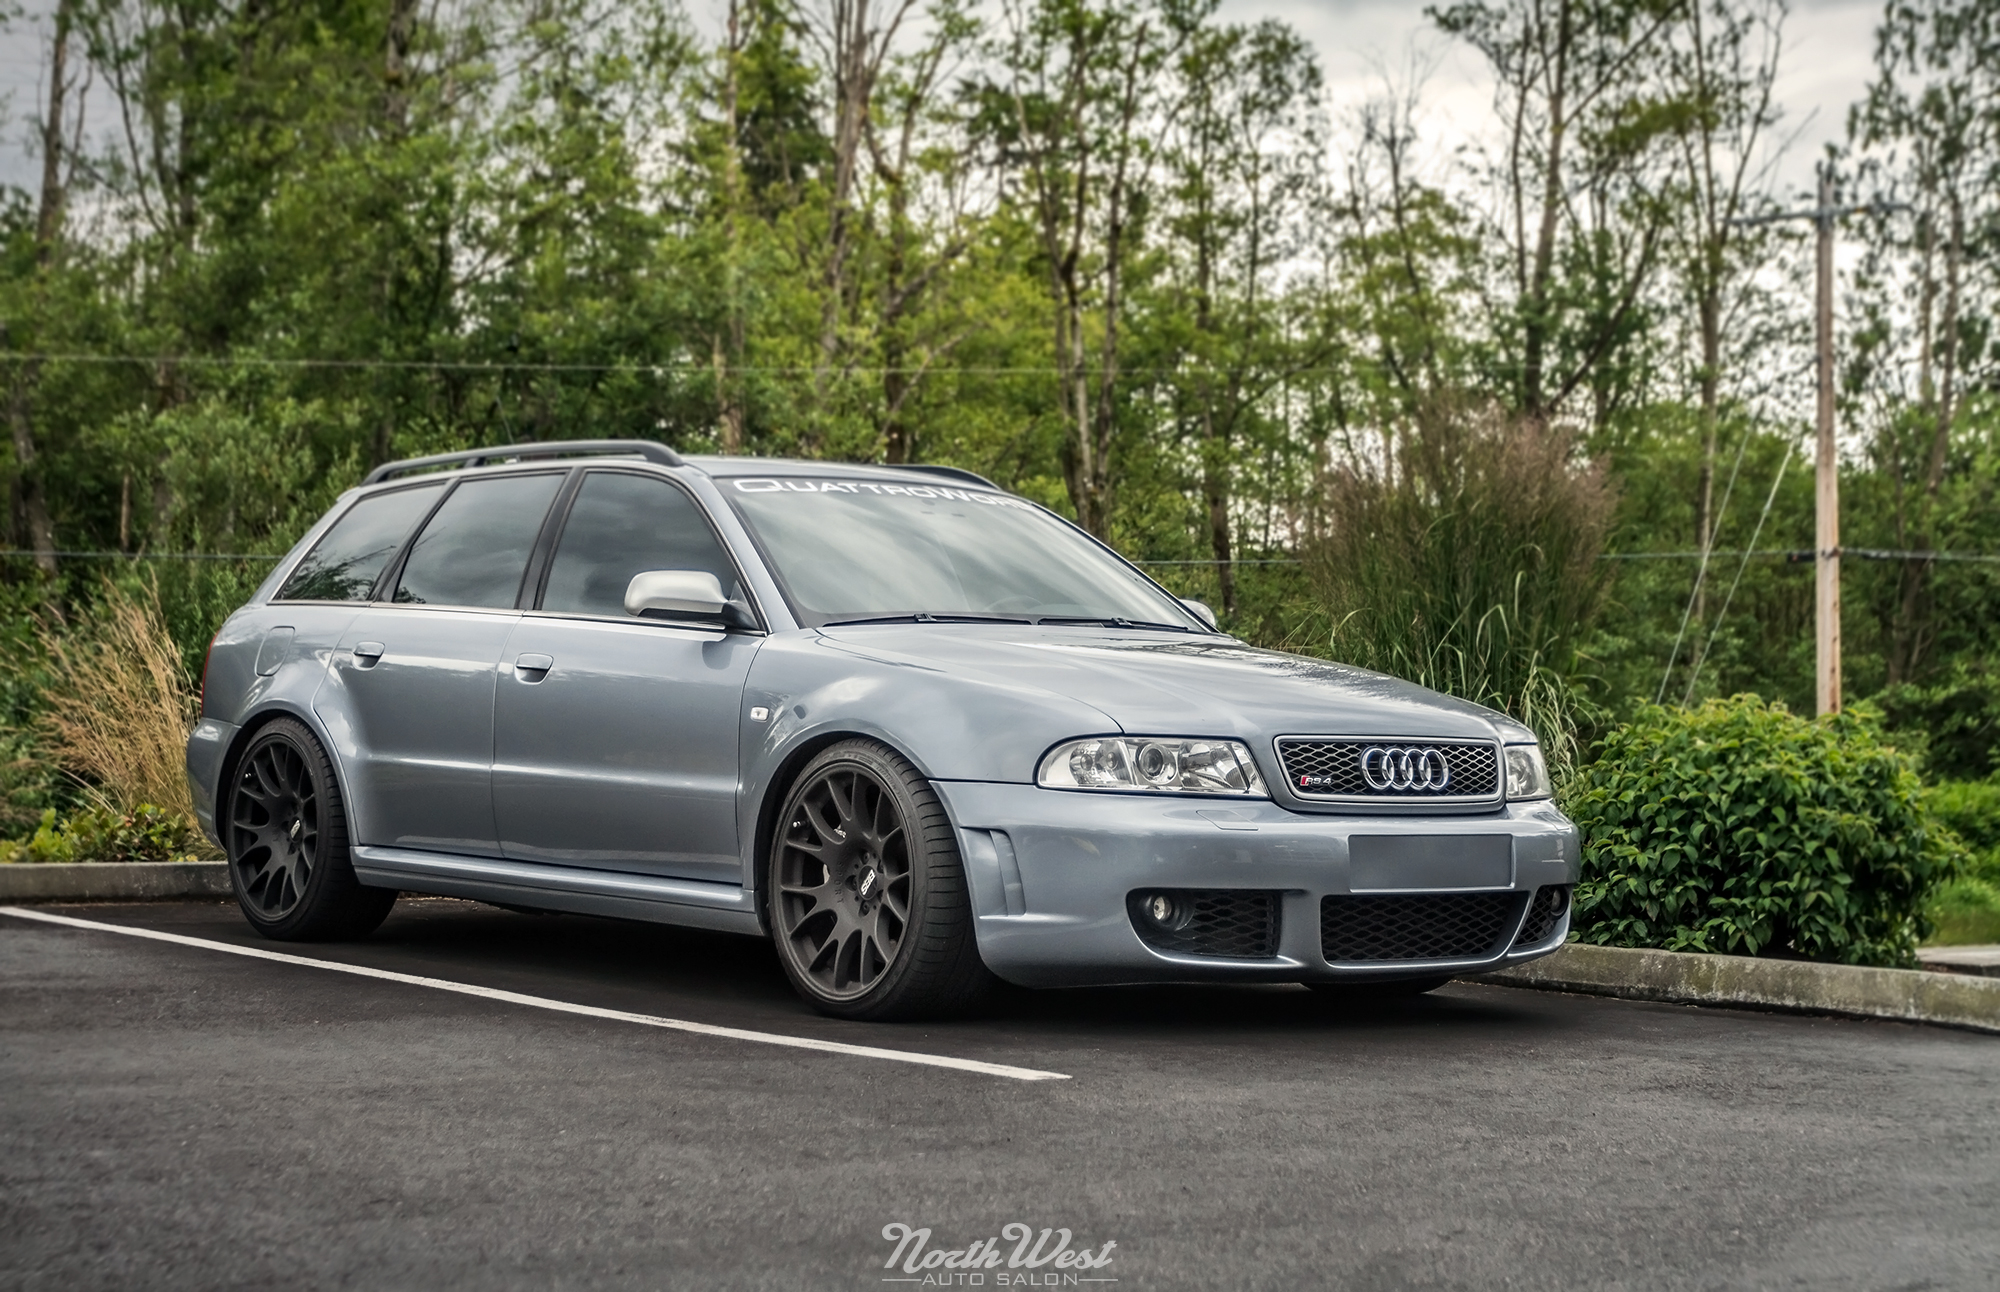 I Love The Audi Rs4 Avant B6 At The Moment